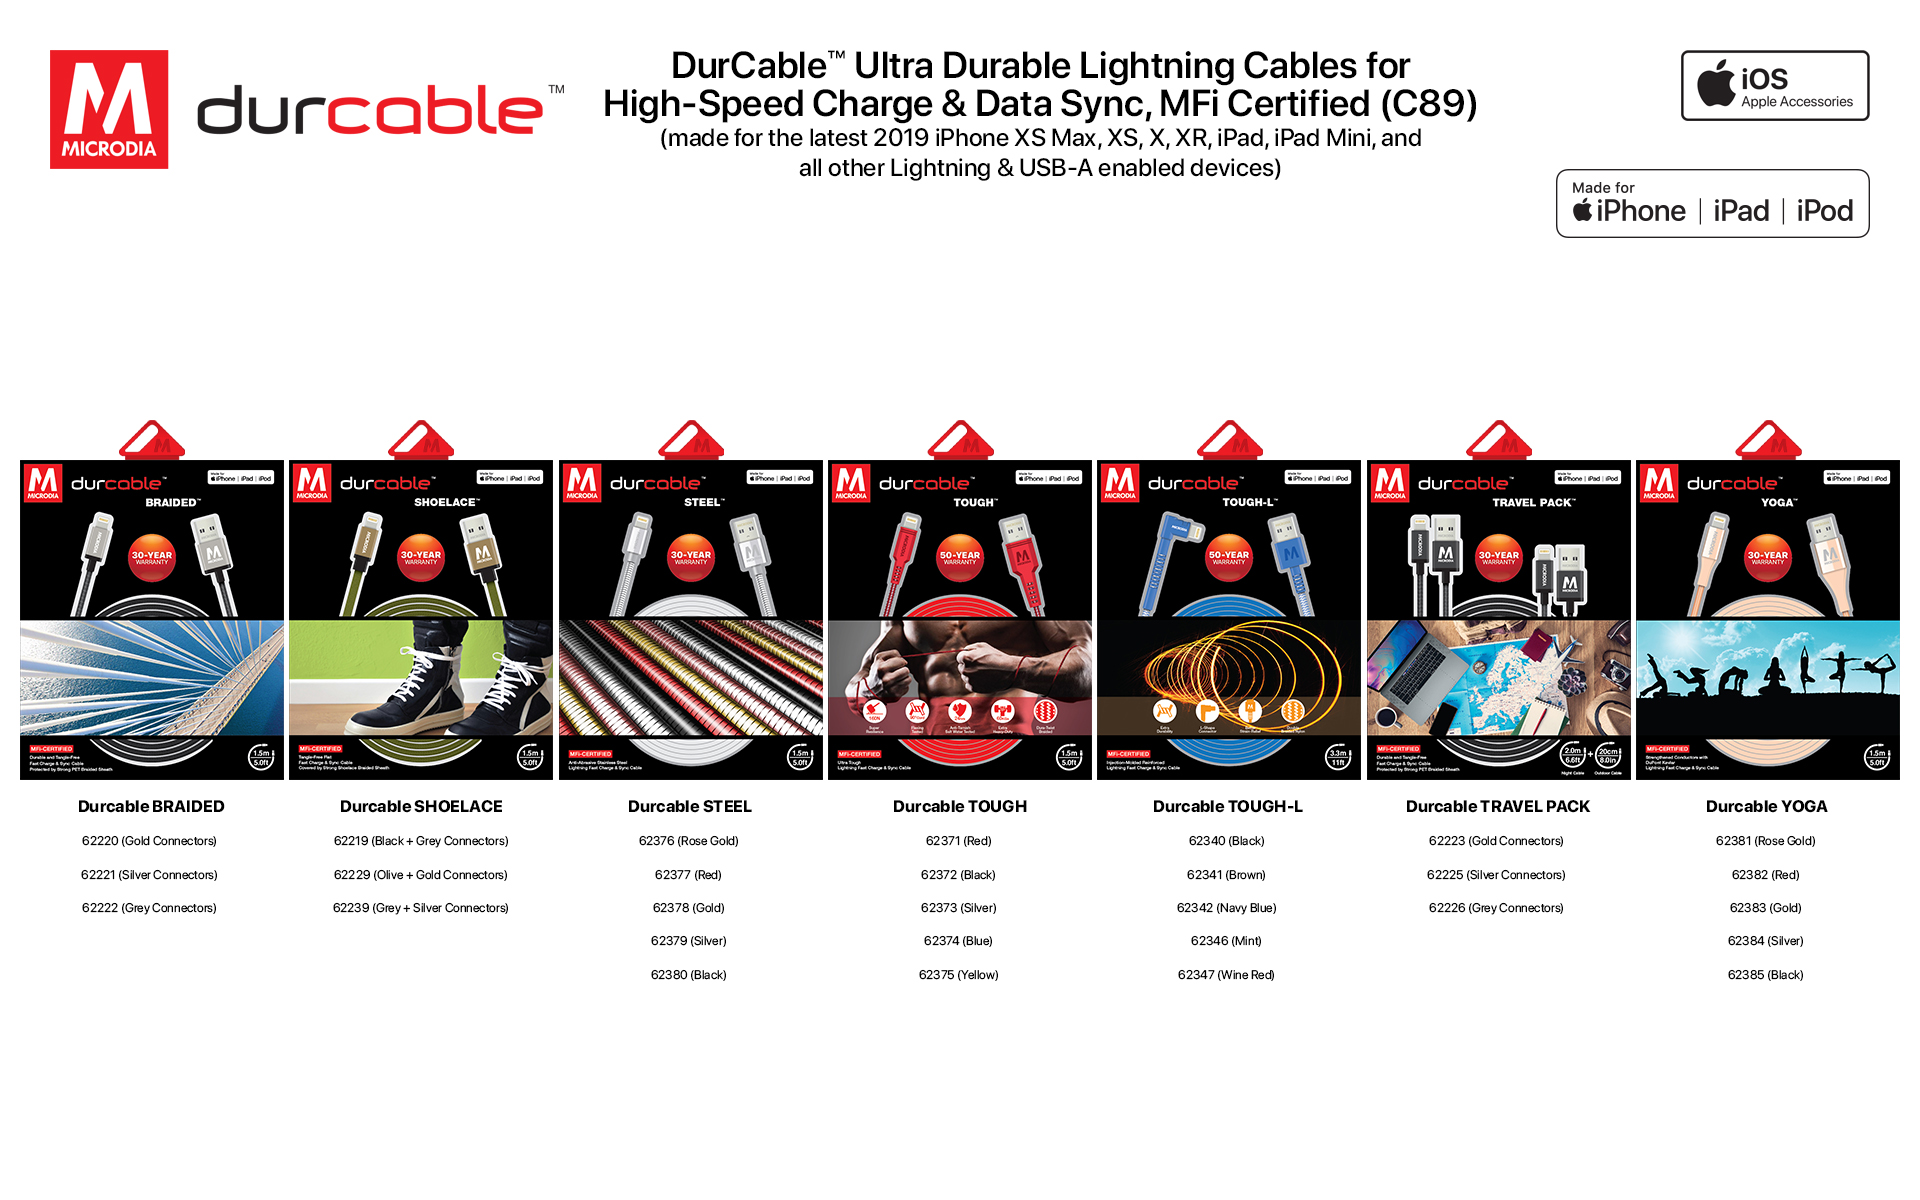 5. Durcable Lightning Cable